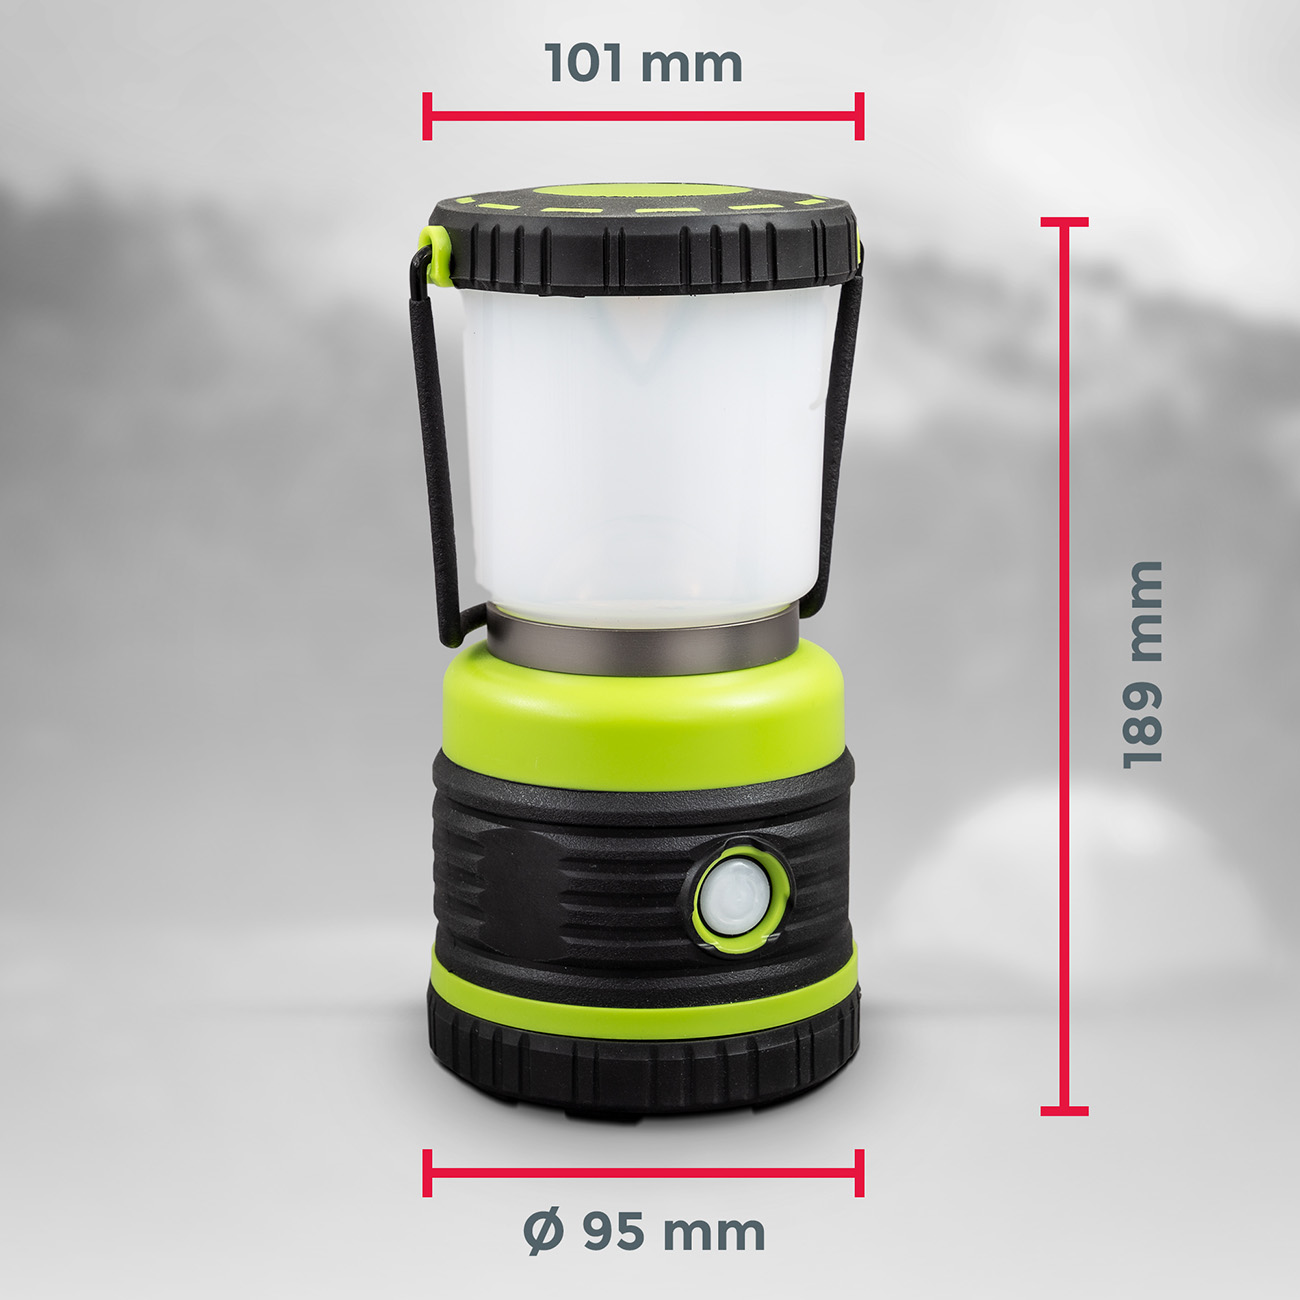 LED Outdoor Campingleuchte mit Tragegriff - 8